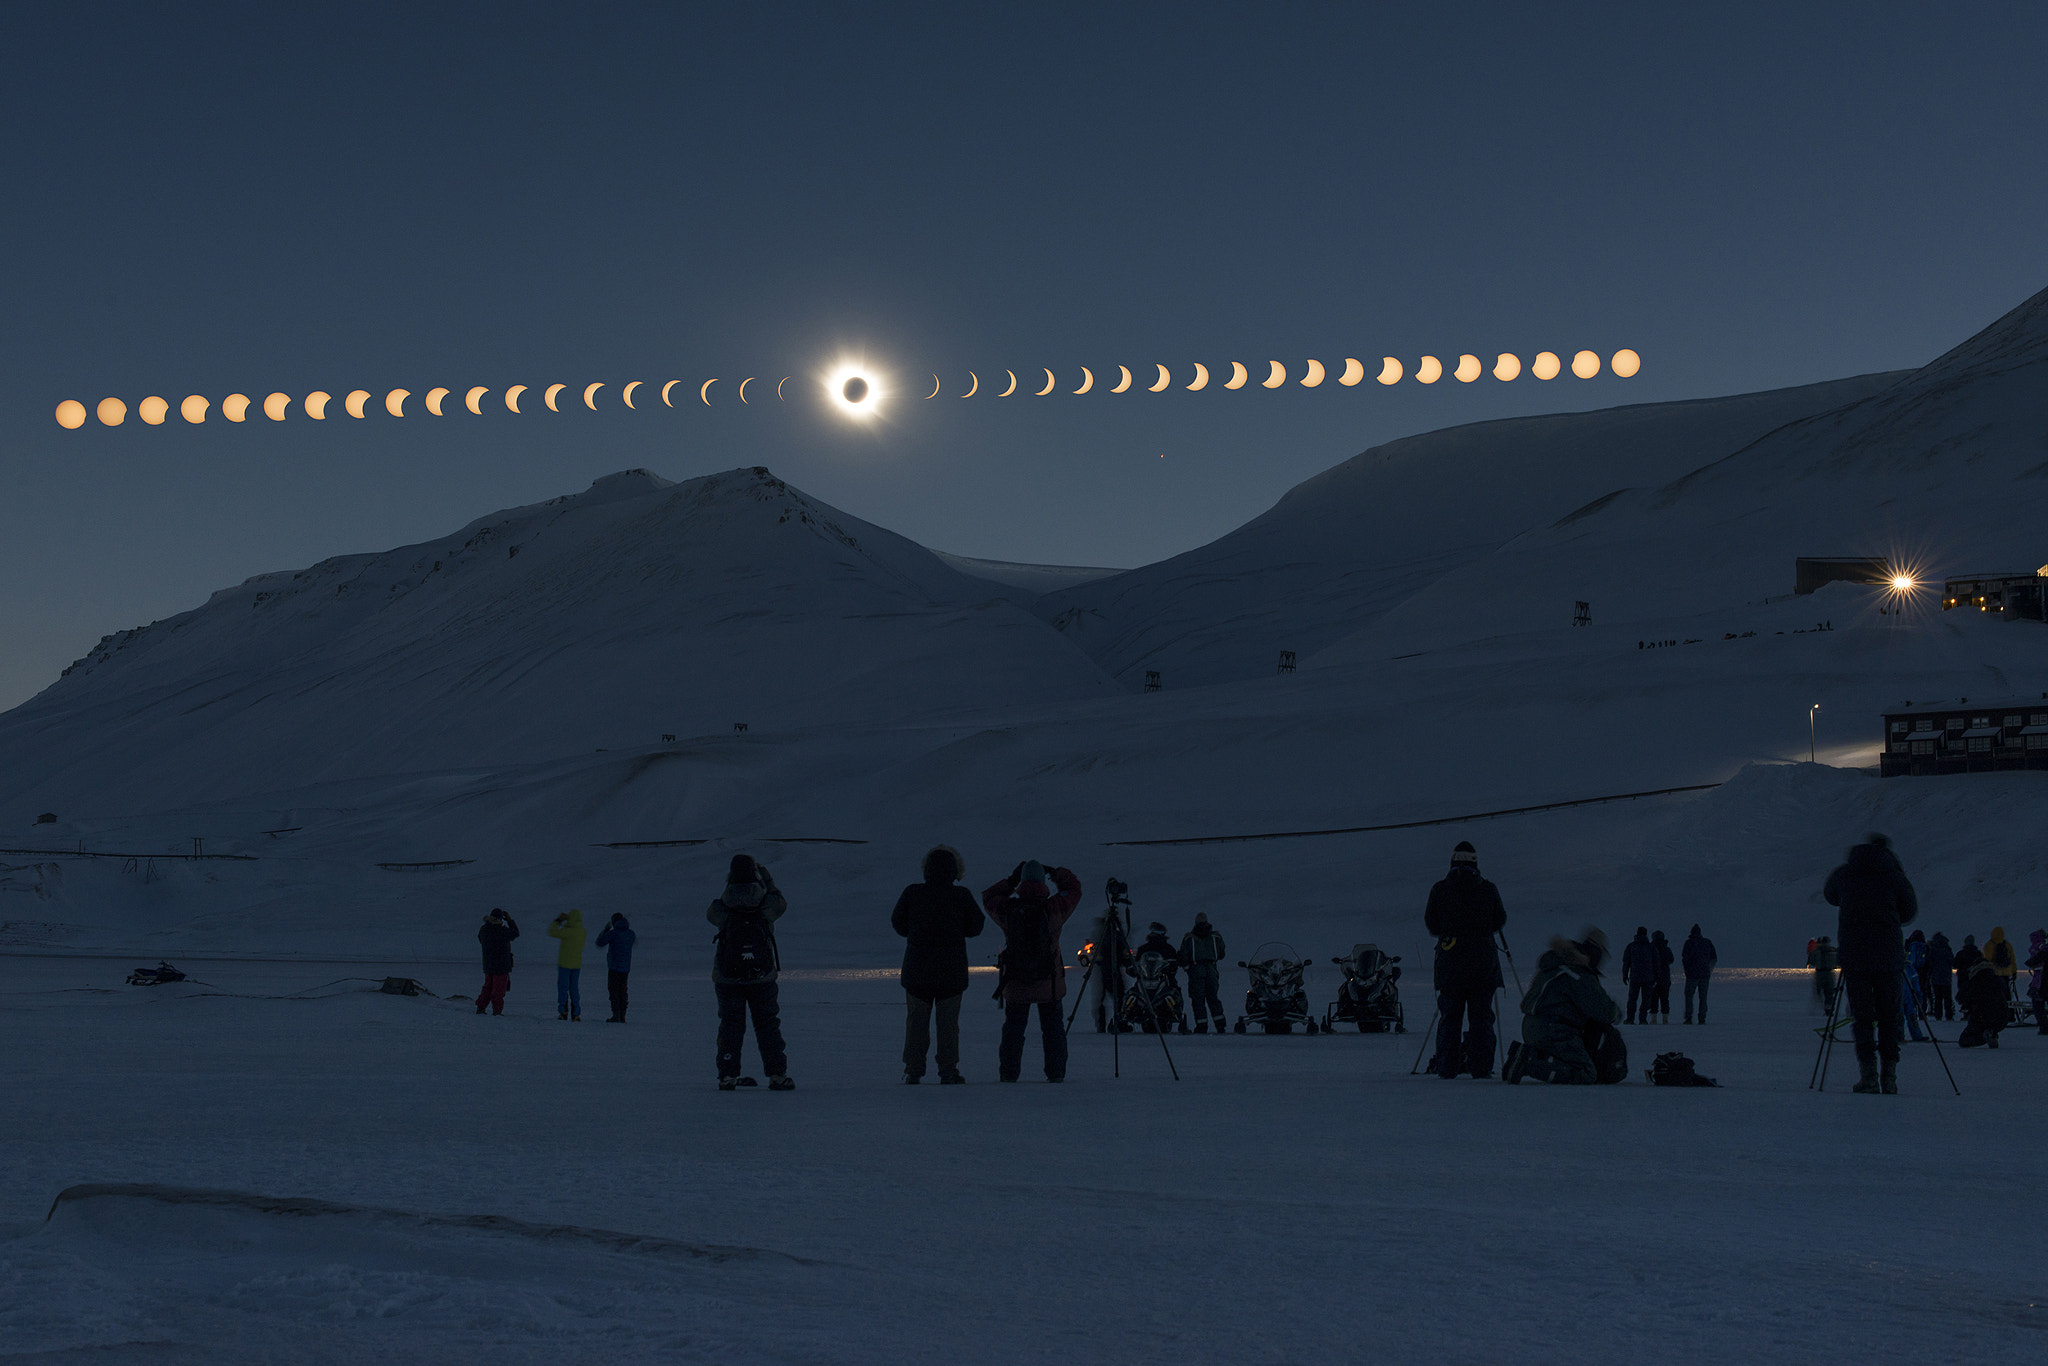 5 Videos to Watch Before Photographing the Eclipse